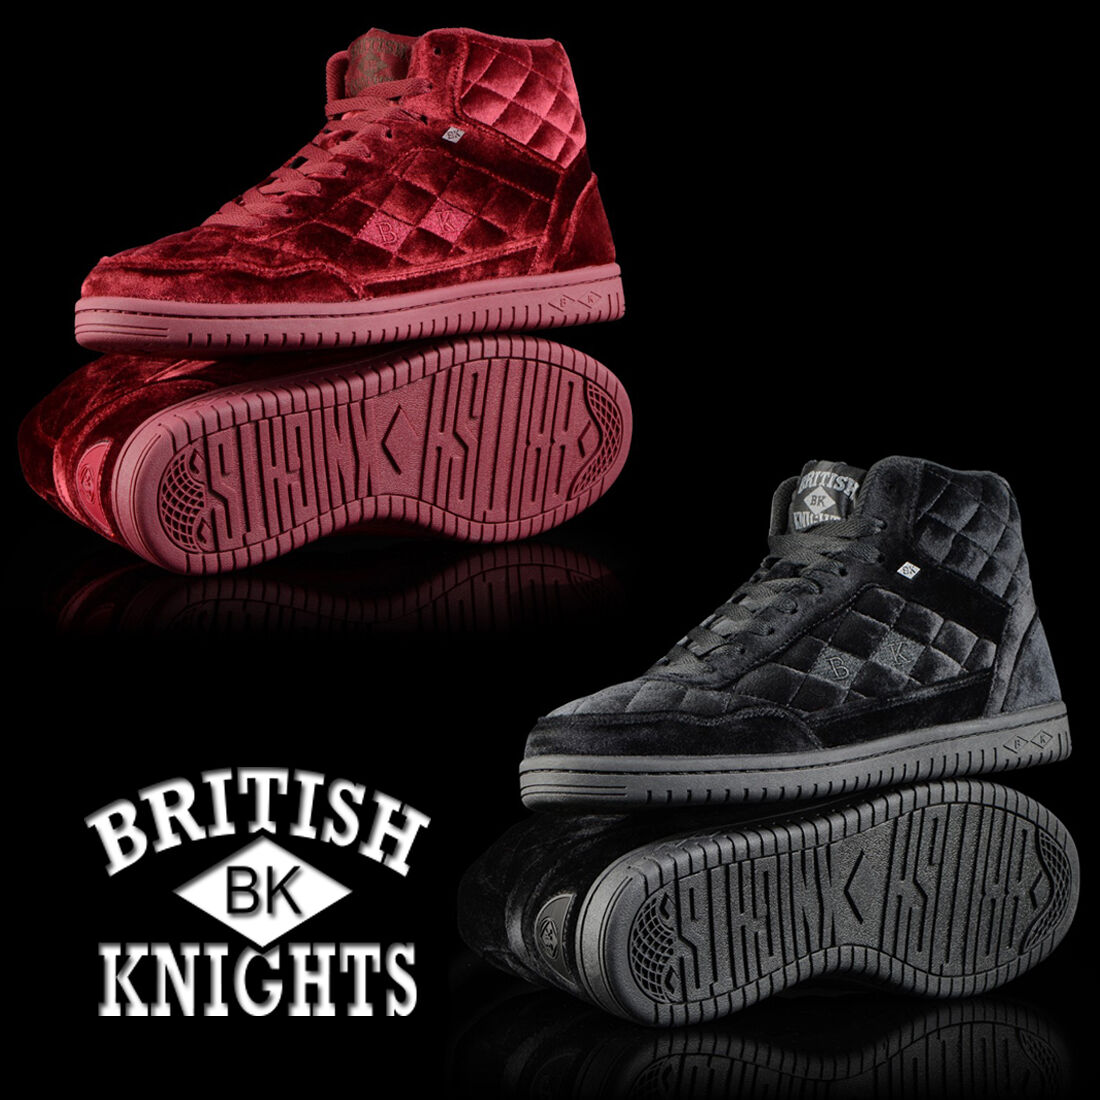 cc52c91cd119 NEW AUTHENTIC BRITISH KNIGHTS VELVET · QUILTS HIGH TOP SHOE